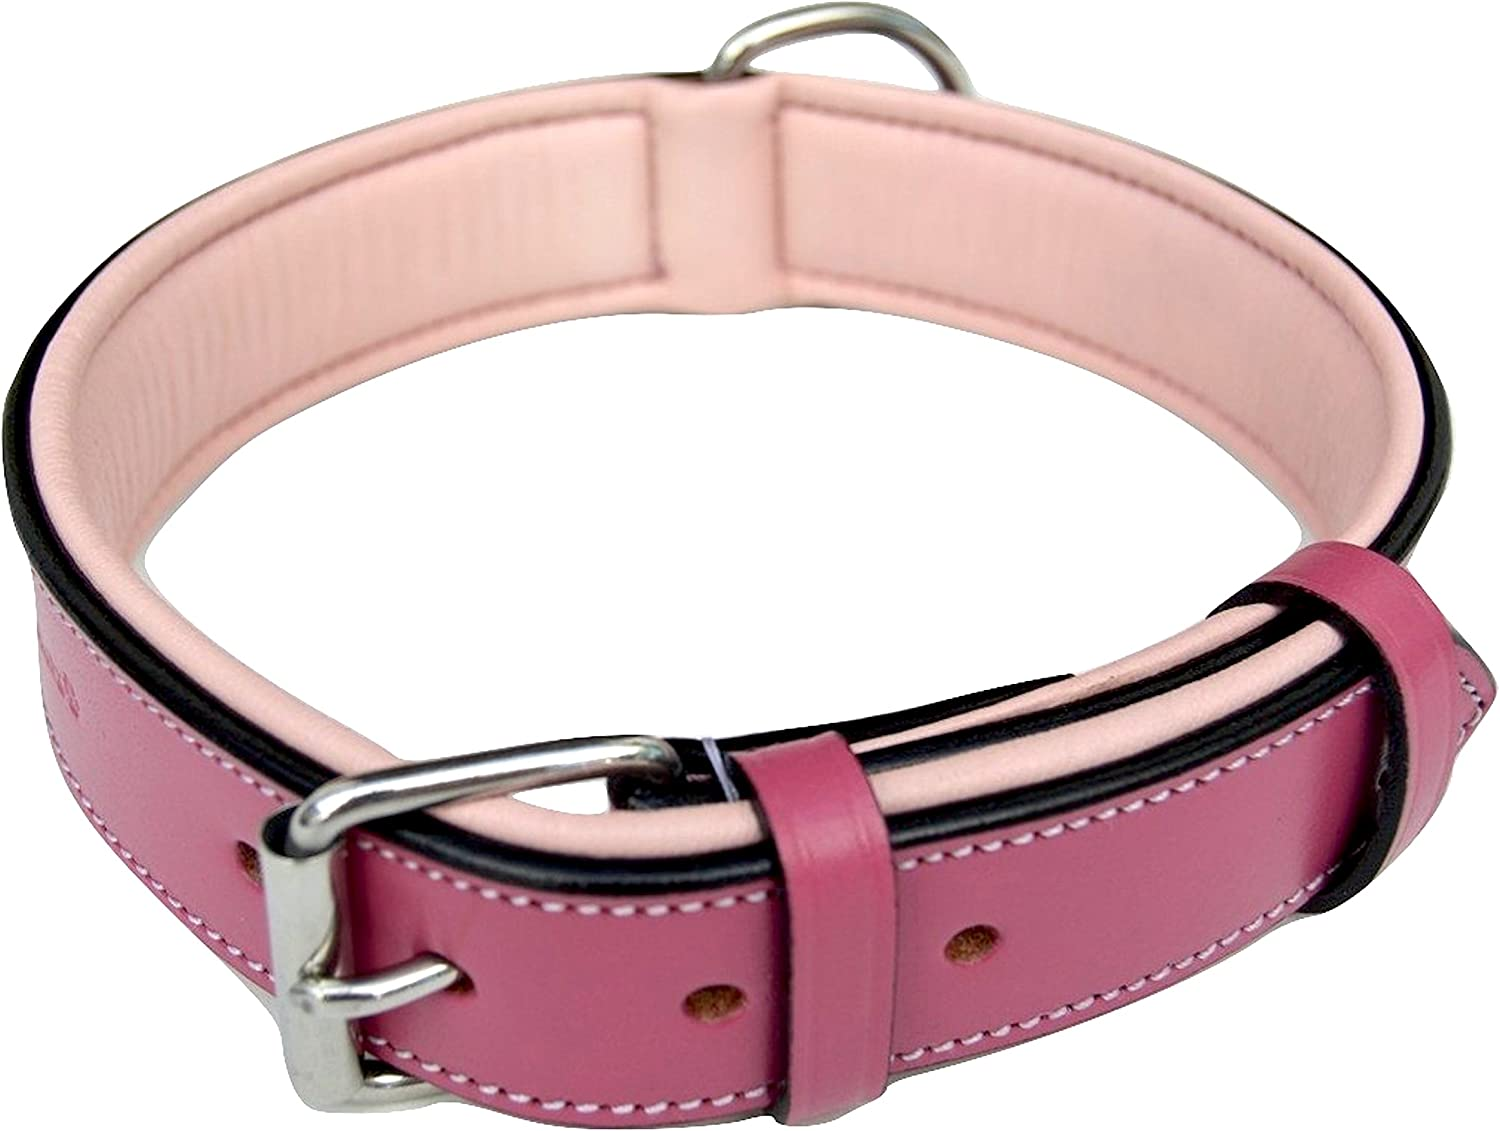 Soft Touch Collars - Luxury Super-cheap Real Padded Collar The Leather 2021new shipping free shipping Dog